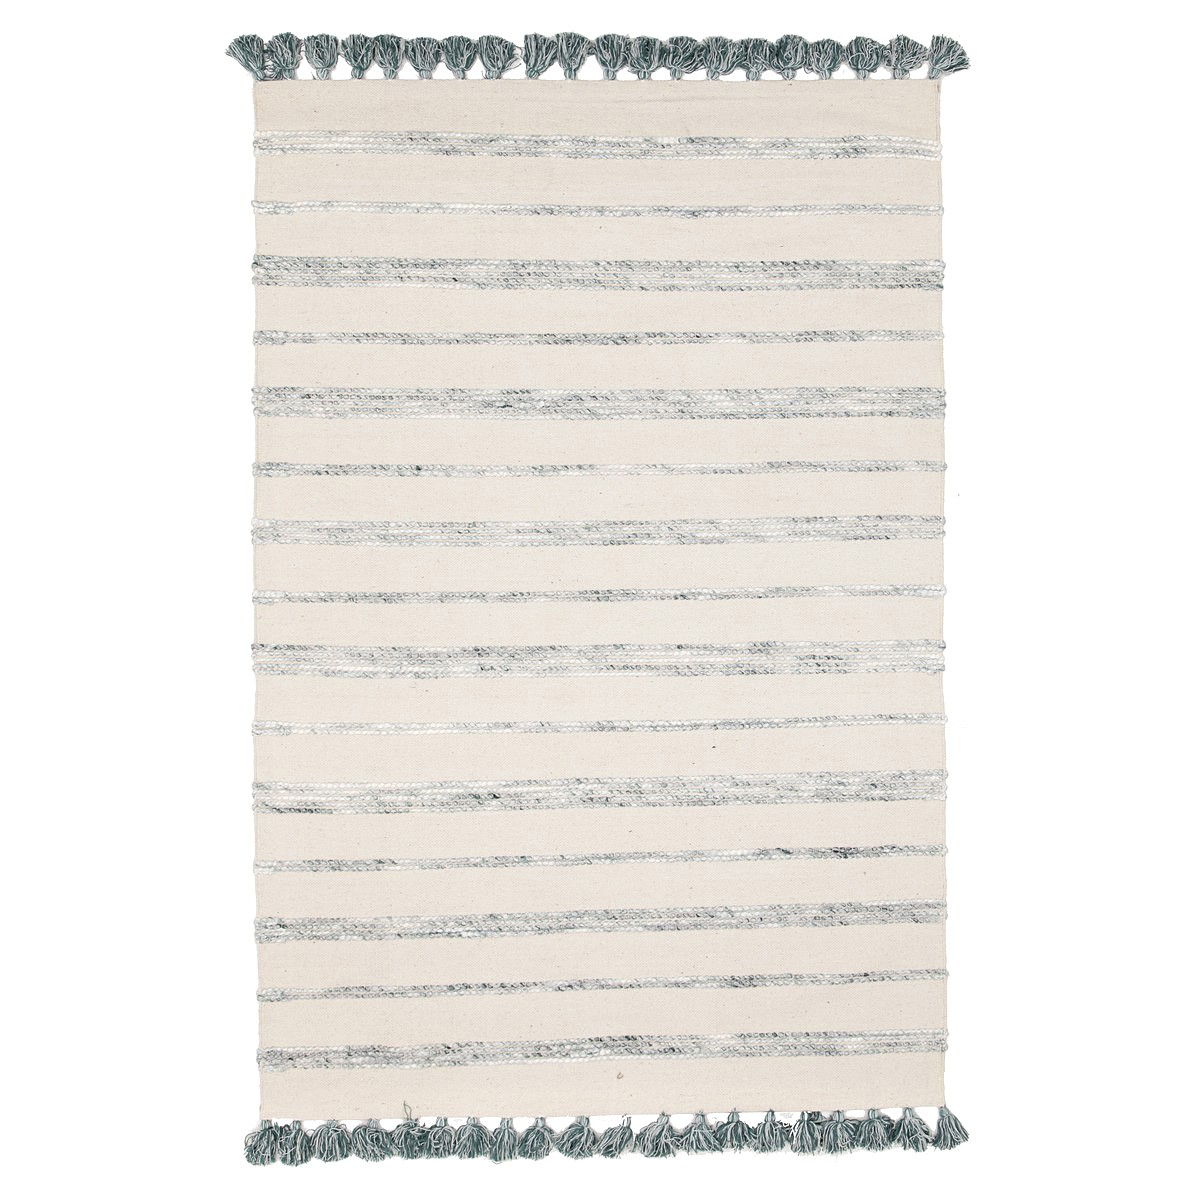 Gypsy Coconut Reversible Cotton Rug, 270x180cm